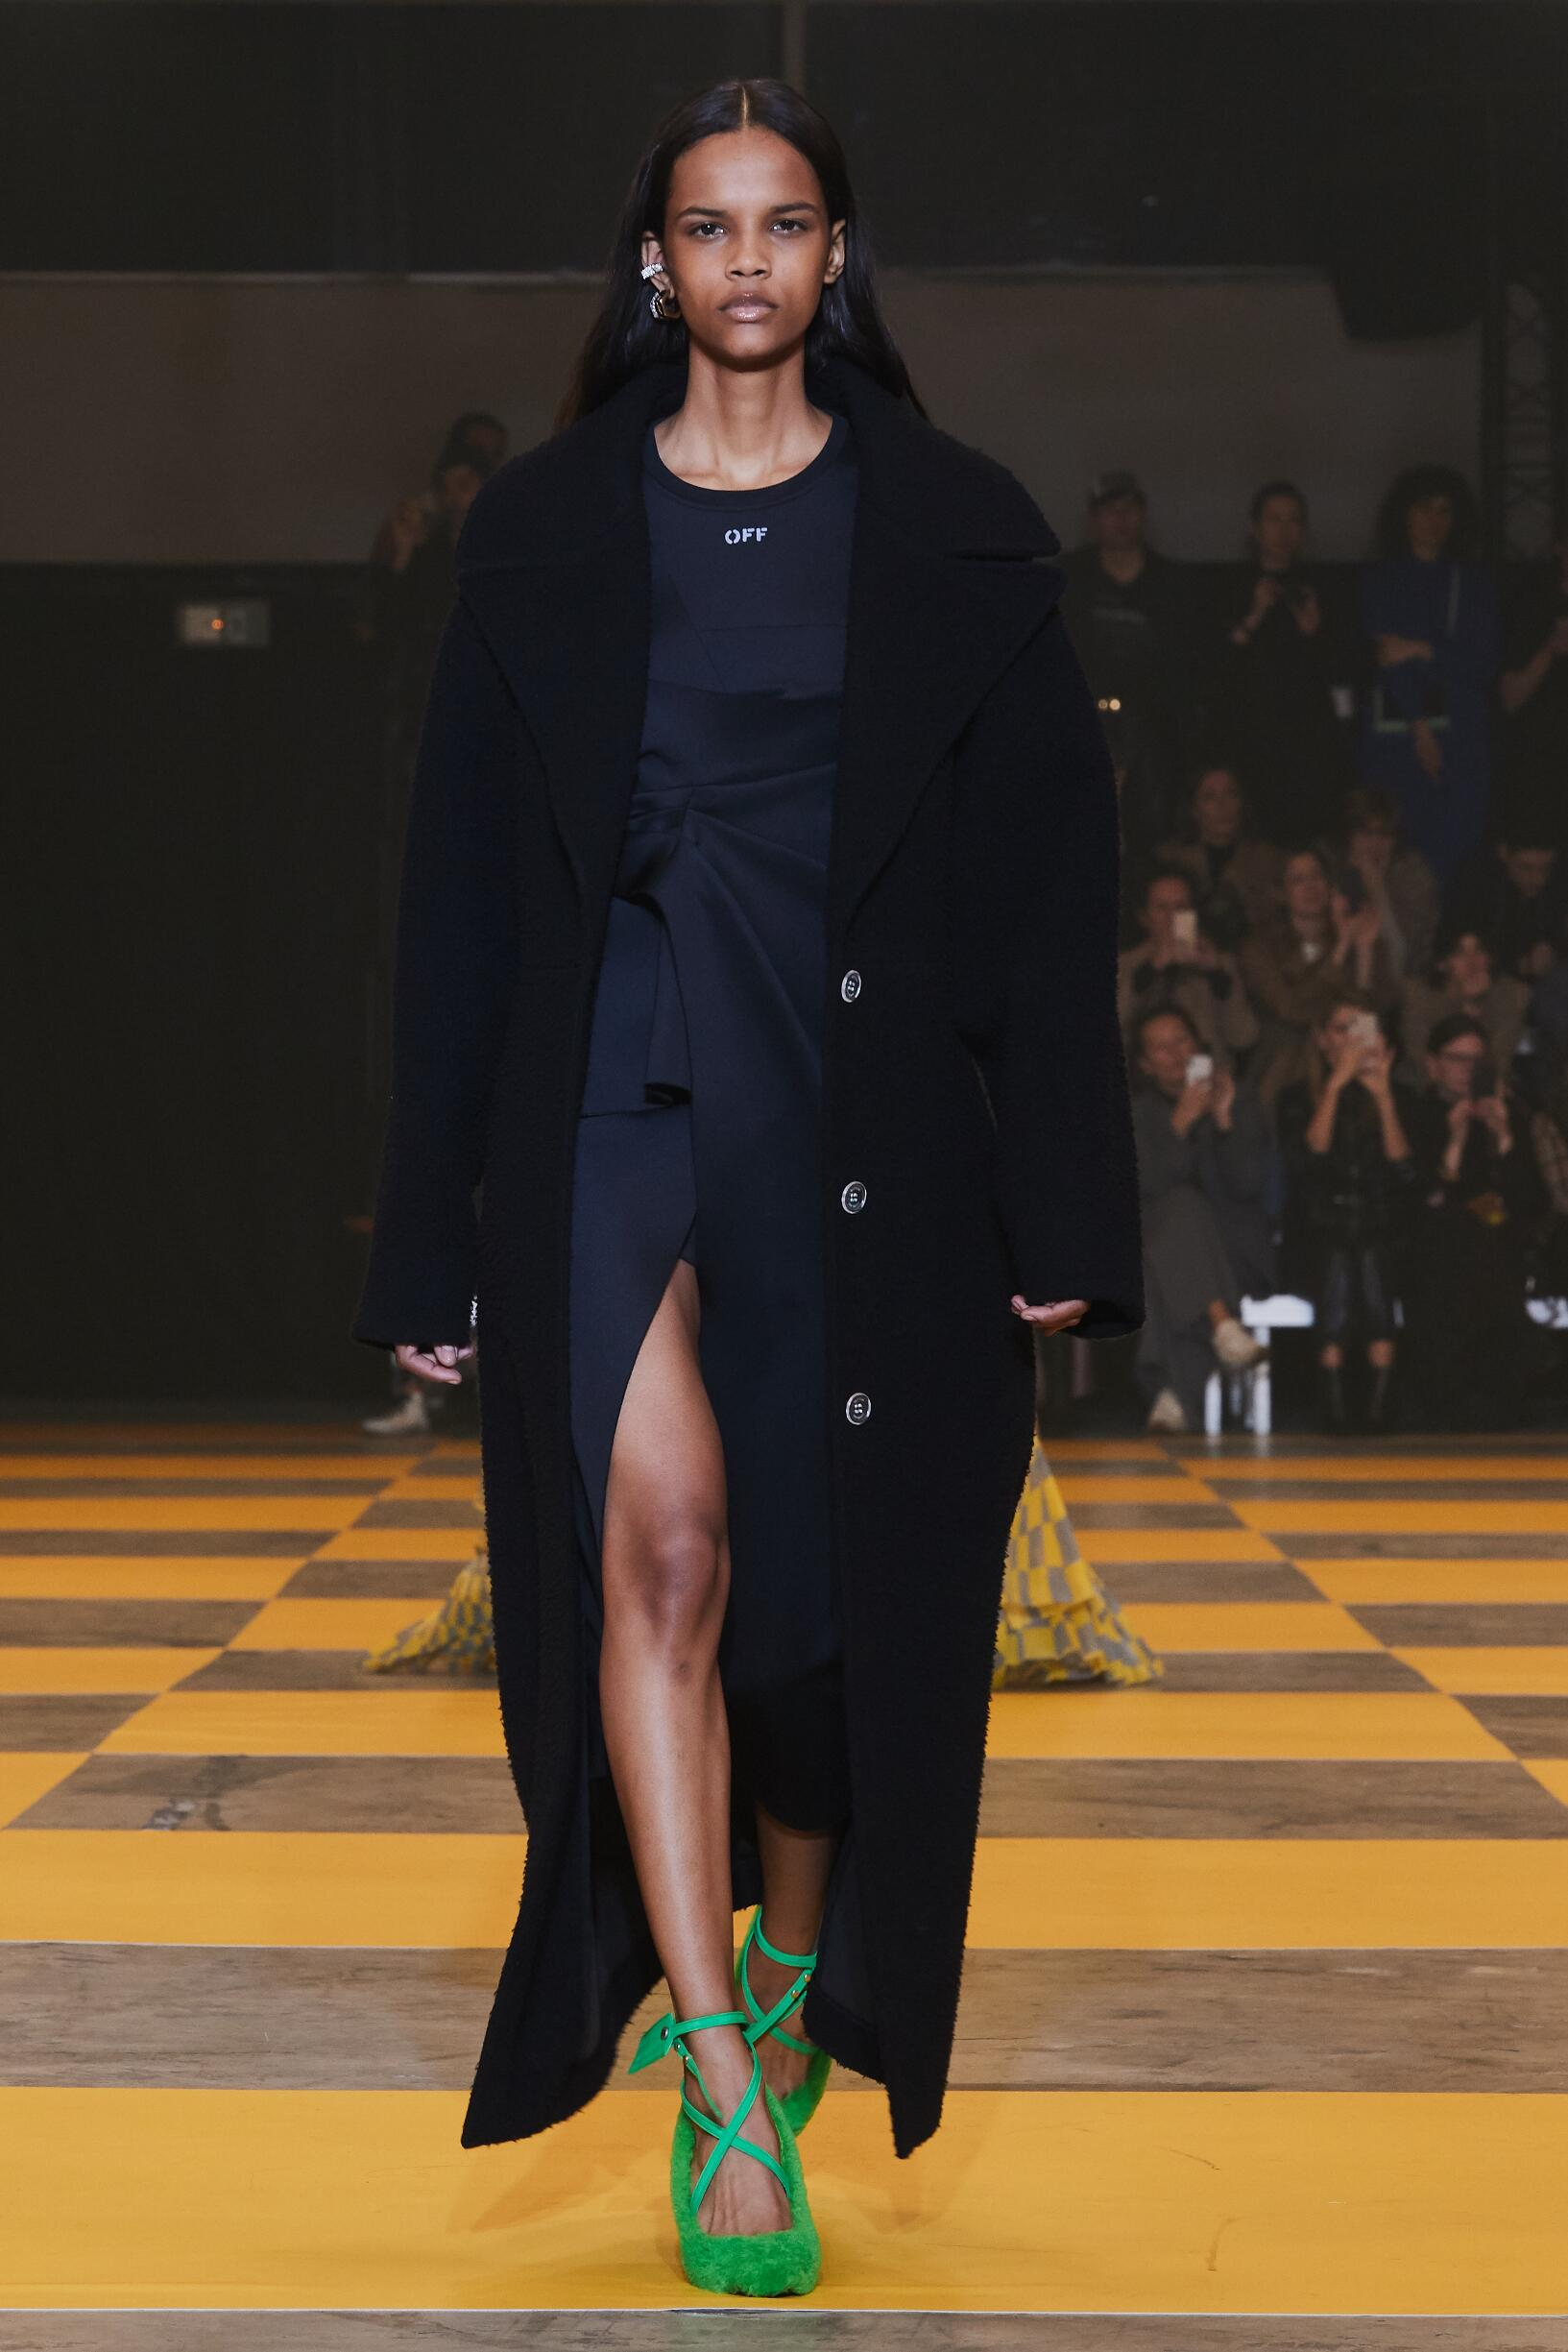 Woman FW 2019 Off White c/o Virgil Abloh Show Paris Fashion Week